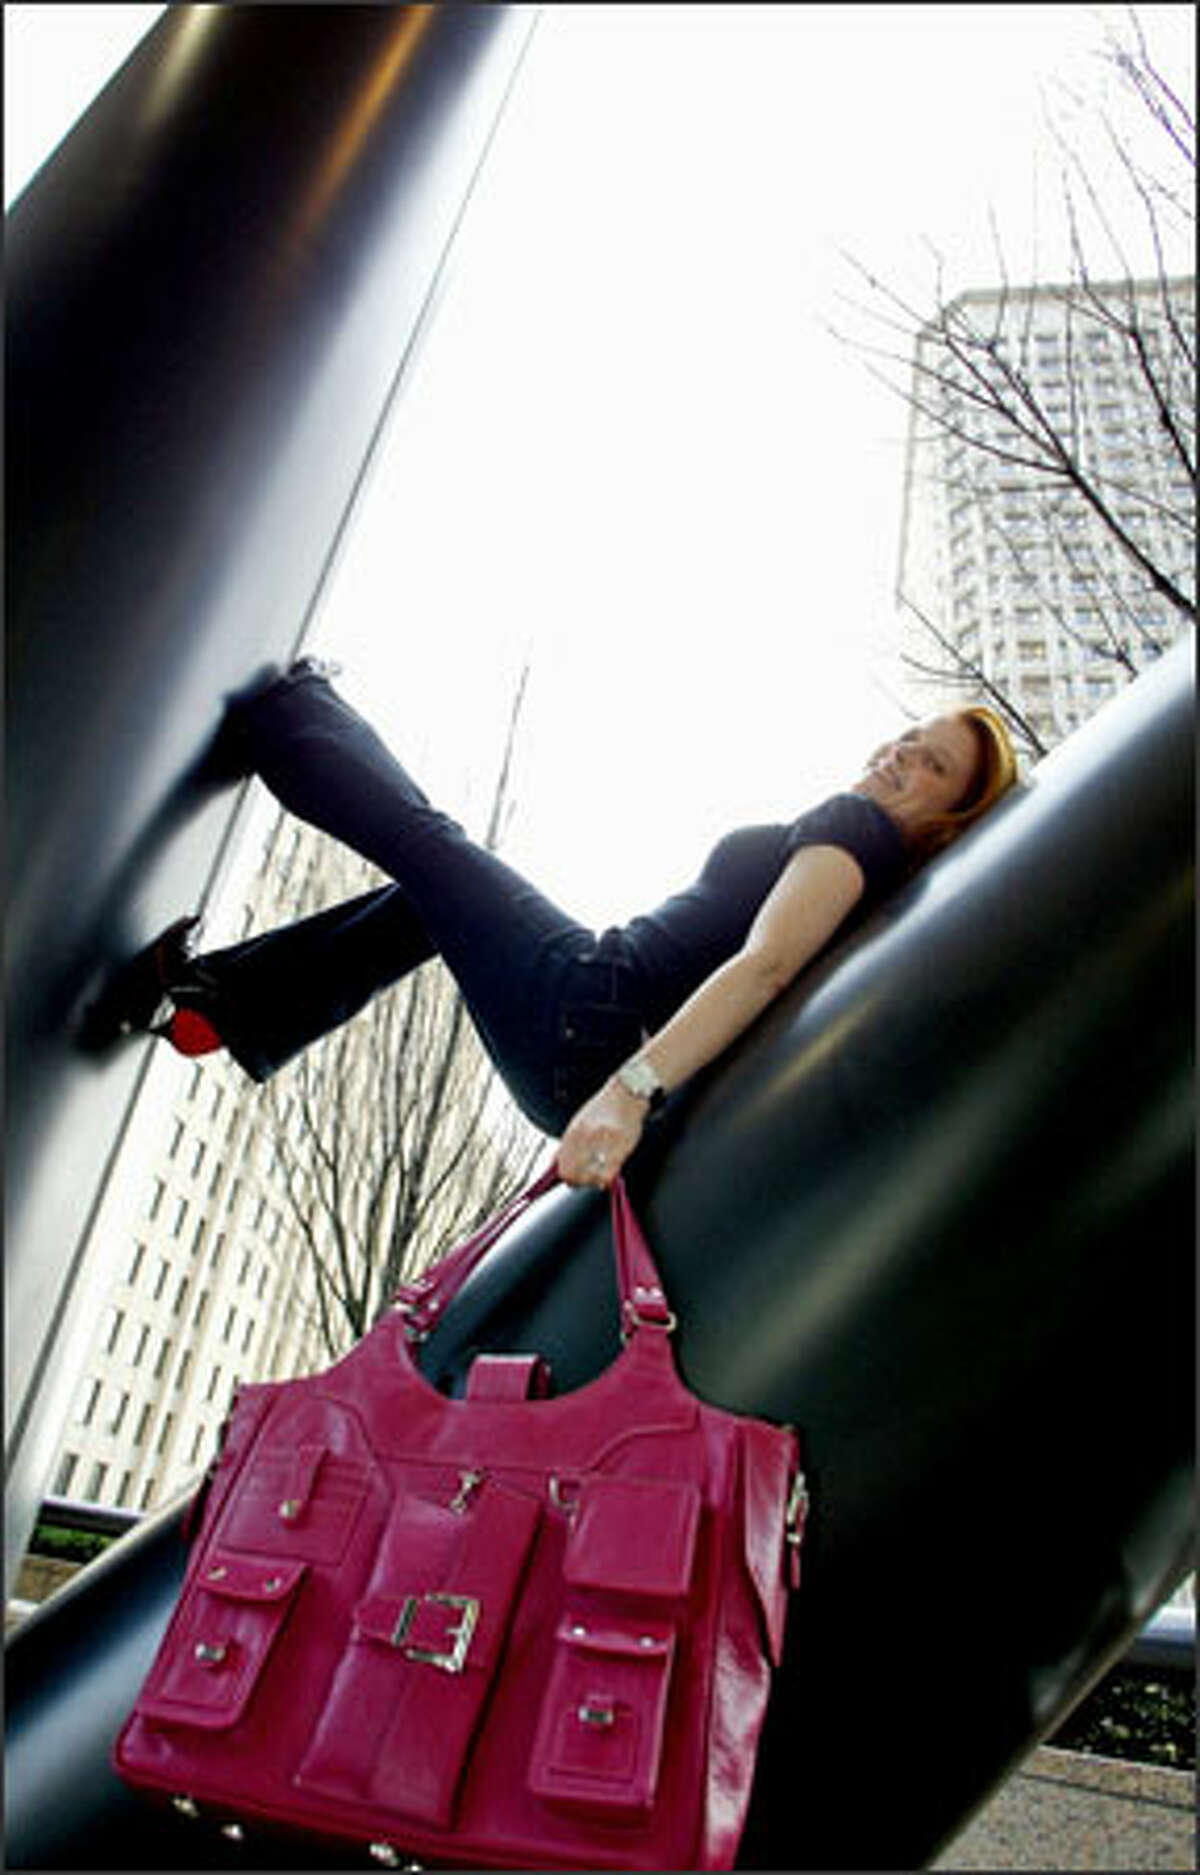 Lauren Selig shows off her Paris laptop bag, which she produces through her company, Lala. Selig's mission: to create bags that look great and are practical as well.